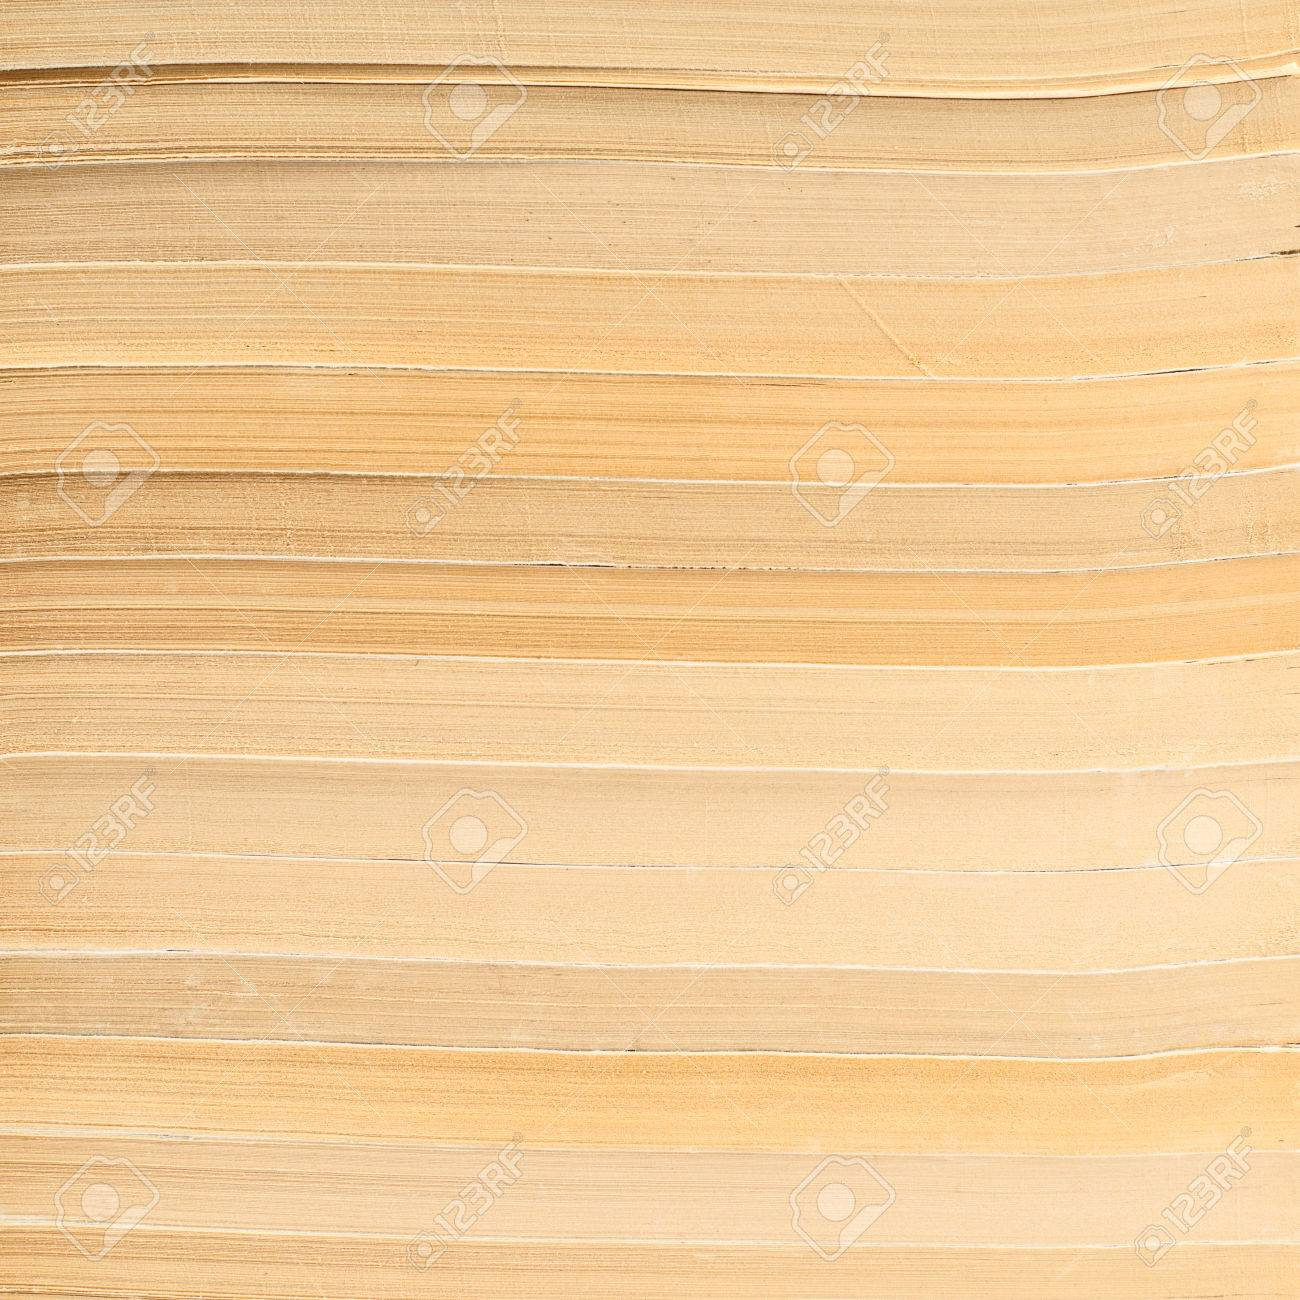 Fragment Of A Stack Old Books As Paper Background Texture Stock Photo